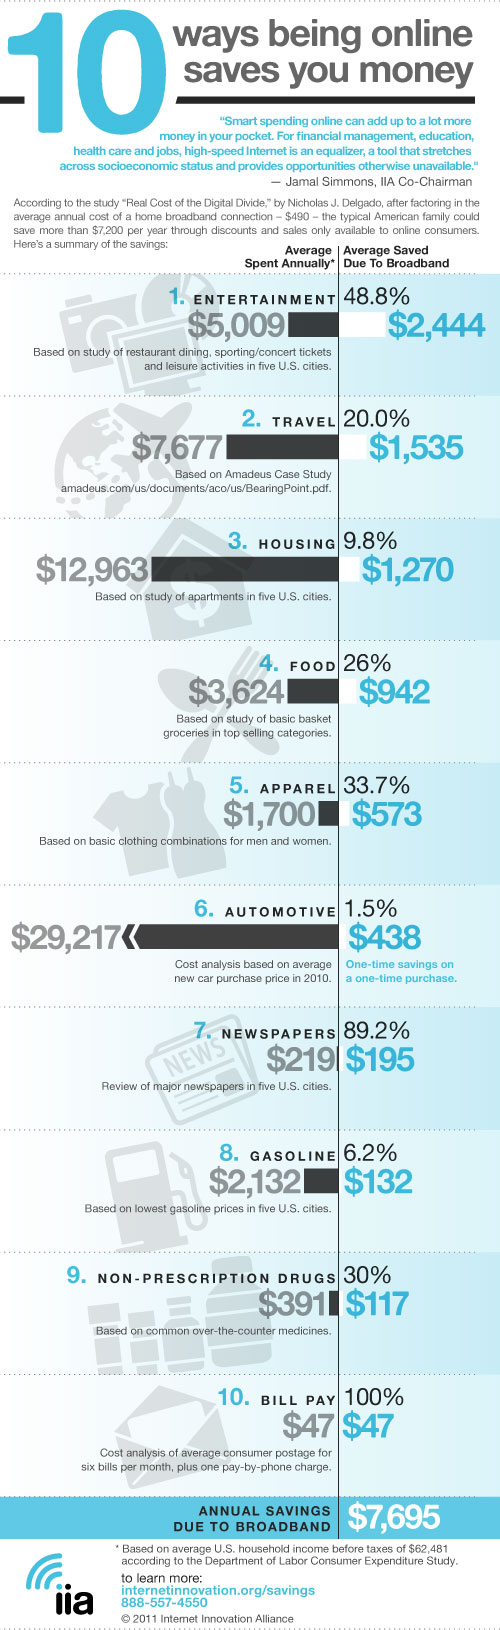 Top Ten Areas of Savings 2011